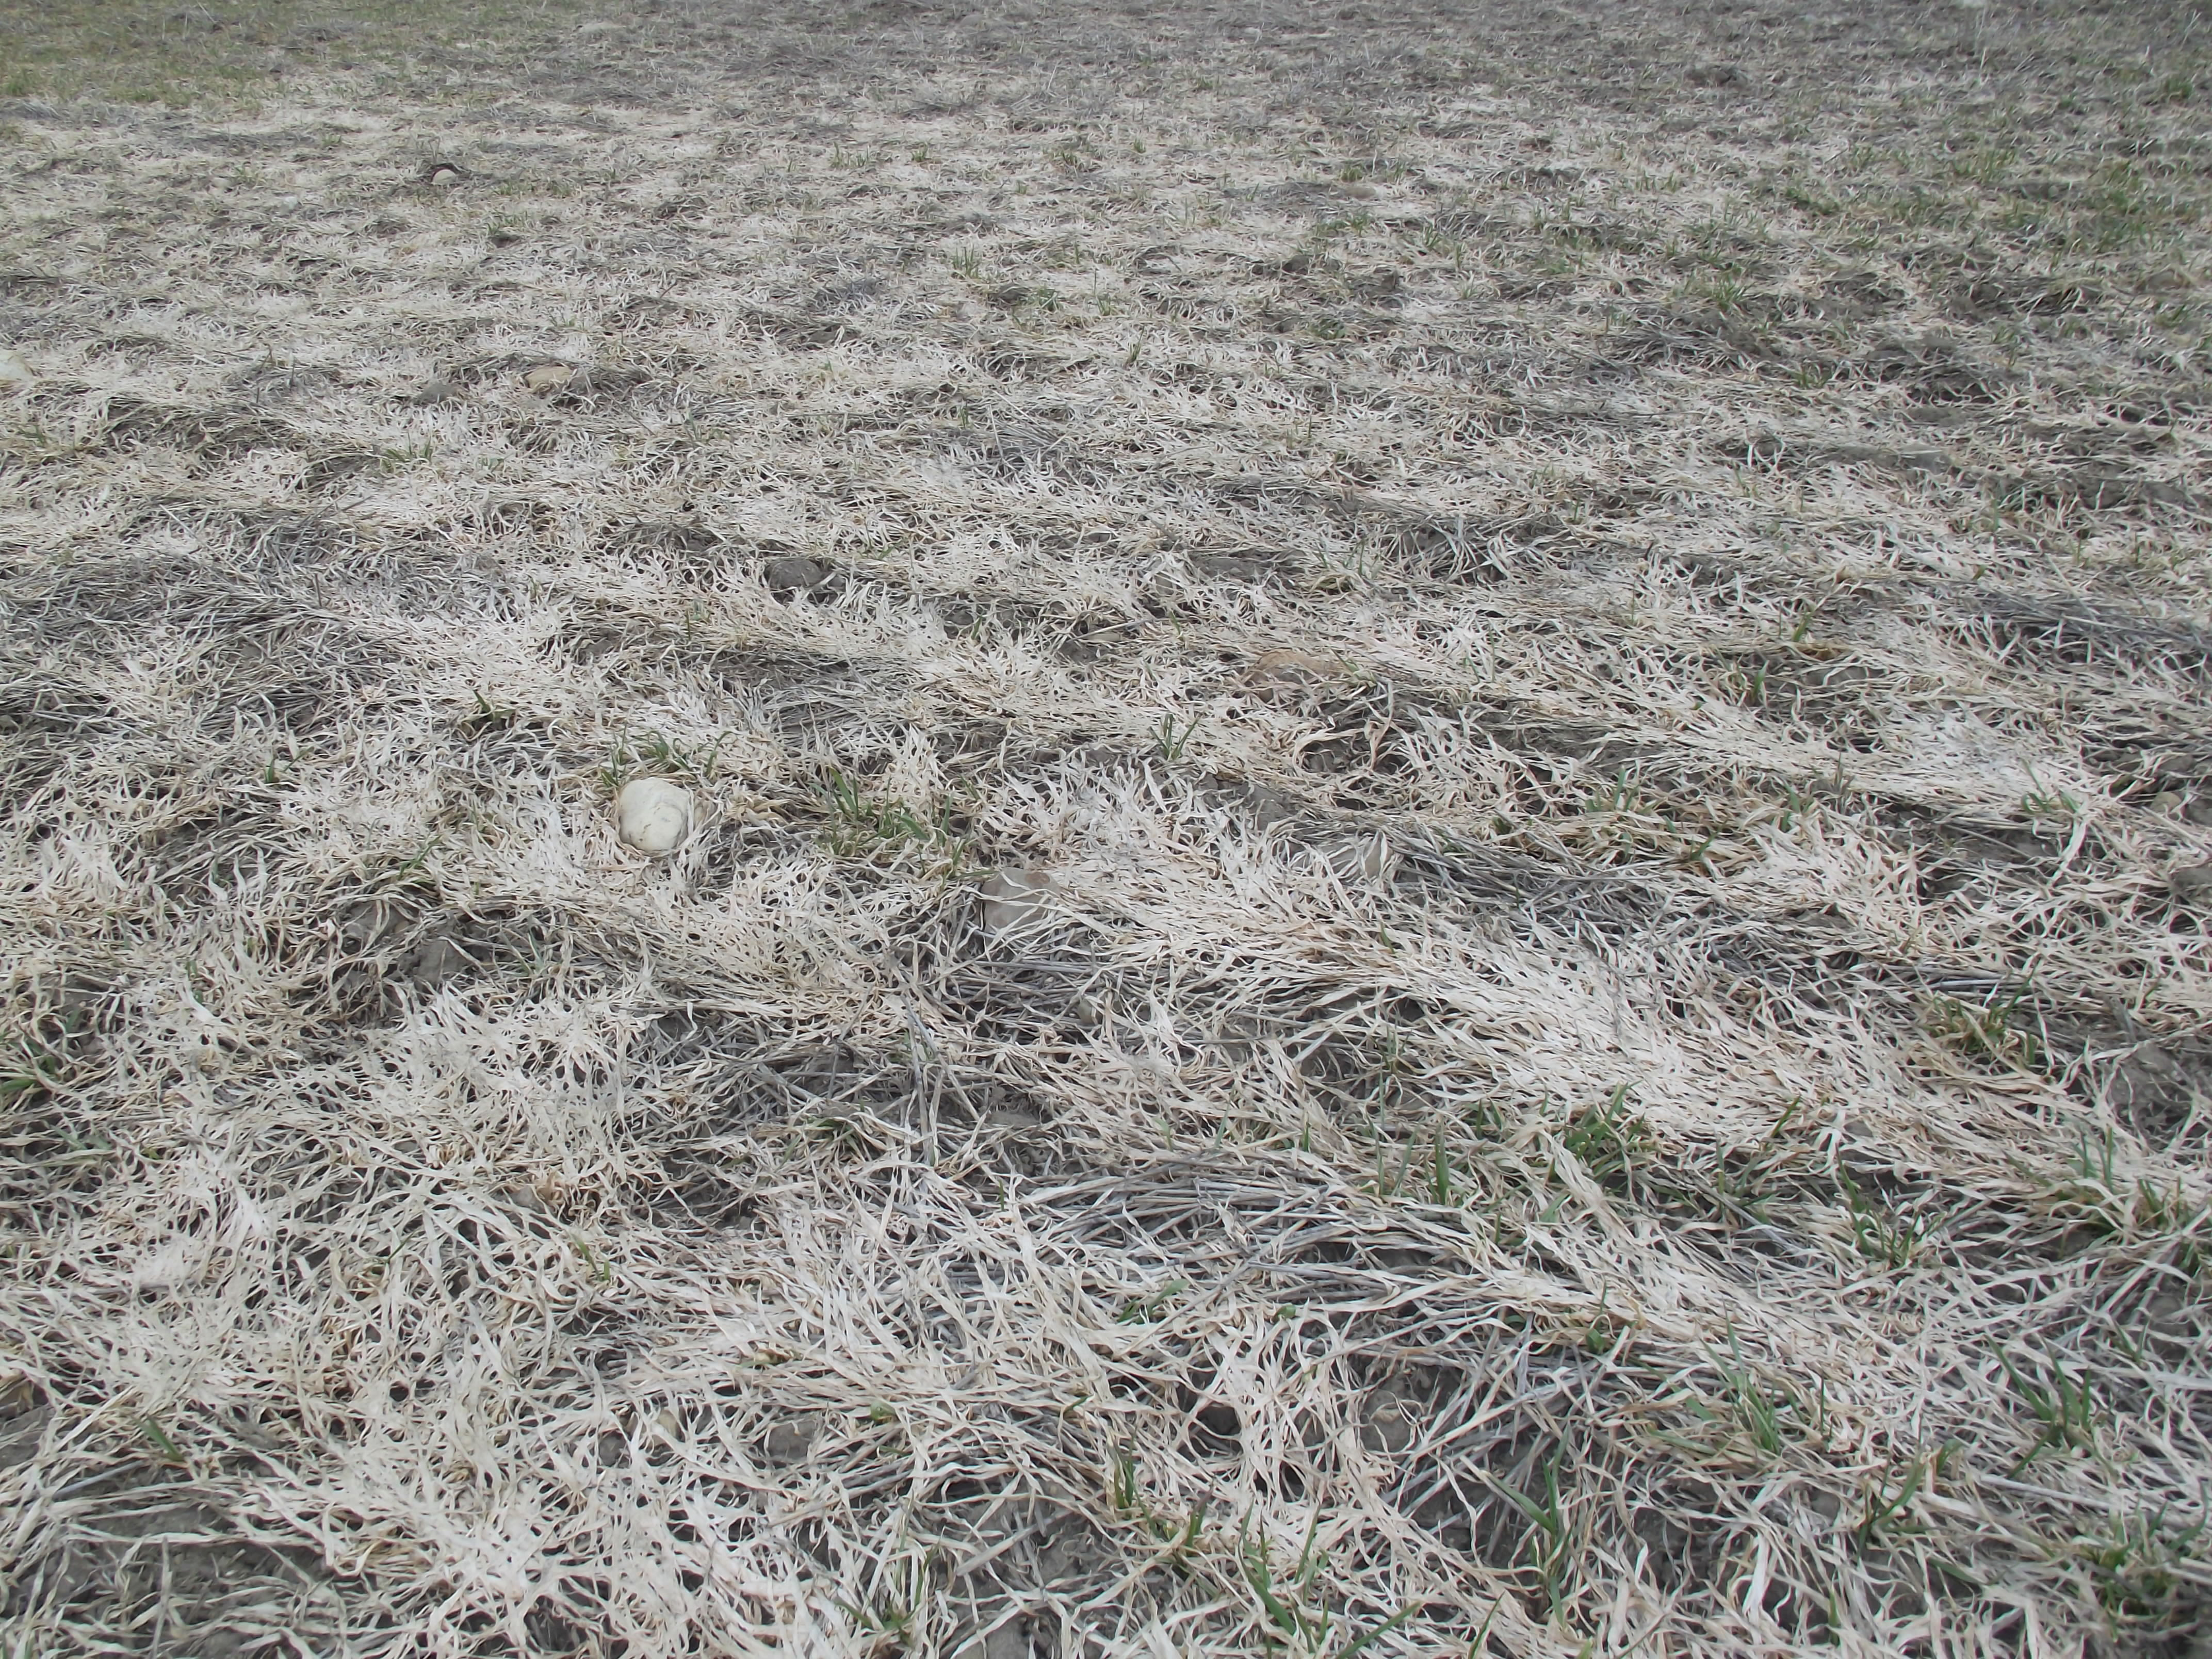 Dead wheat plants resulting from infection by the pathogen causing pink snow mold.